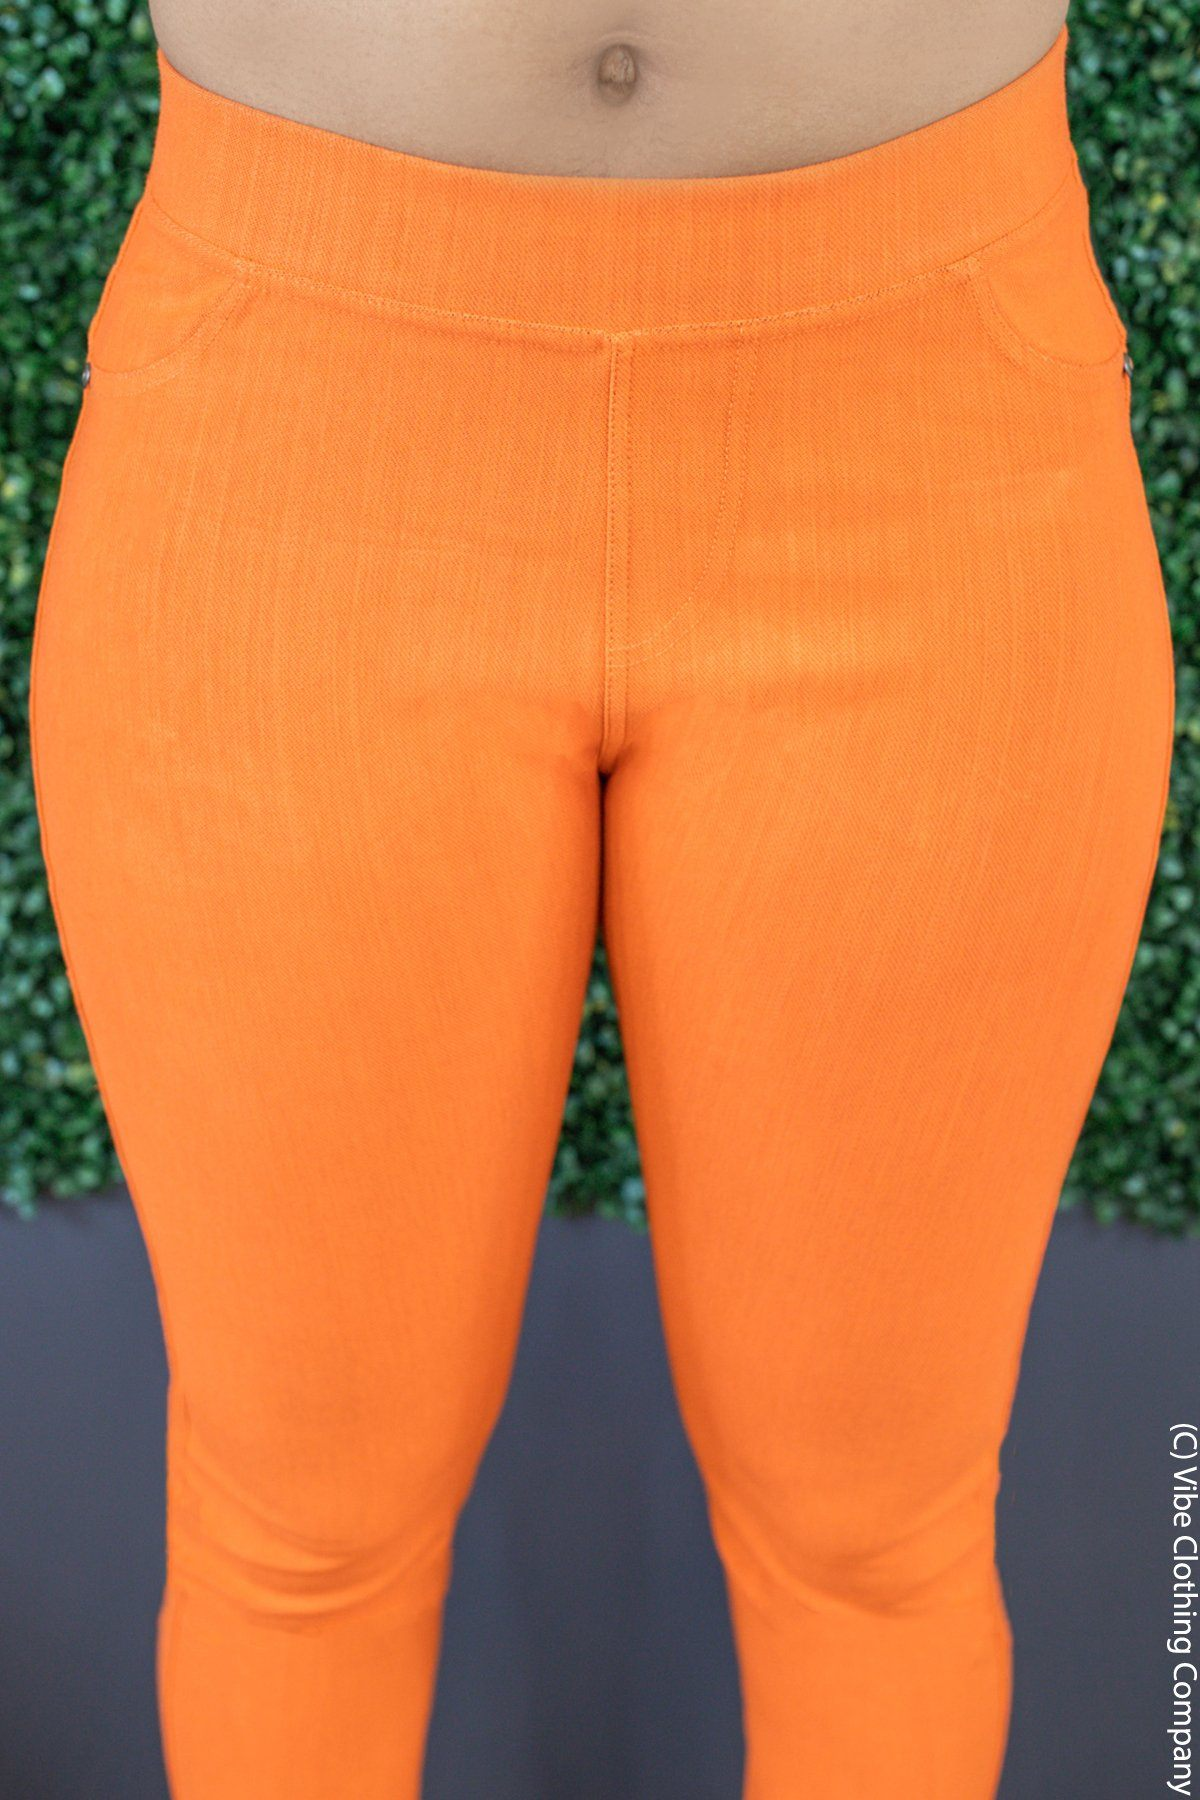 Charleston Skinnies - Tangerine Bottoms Vibe Clothing Company